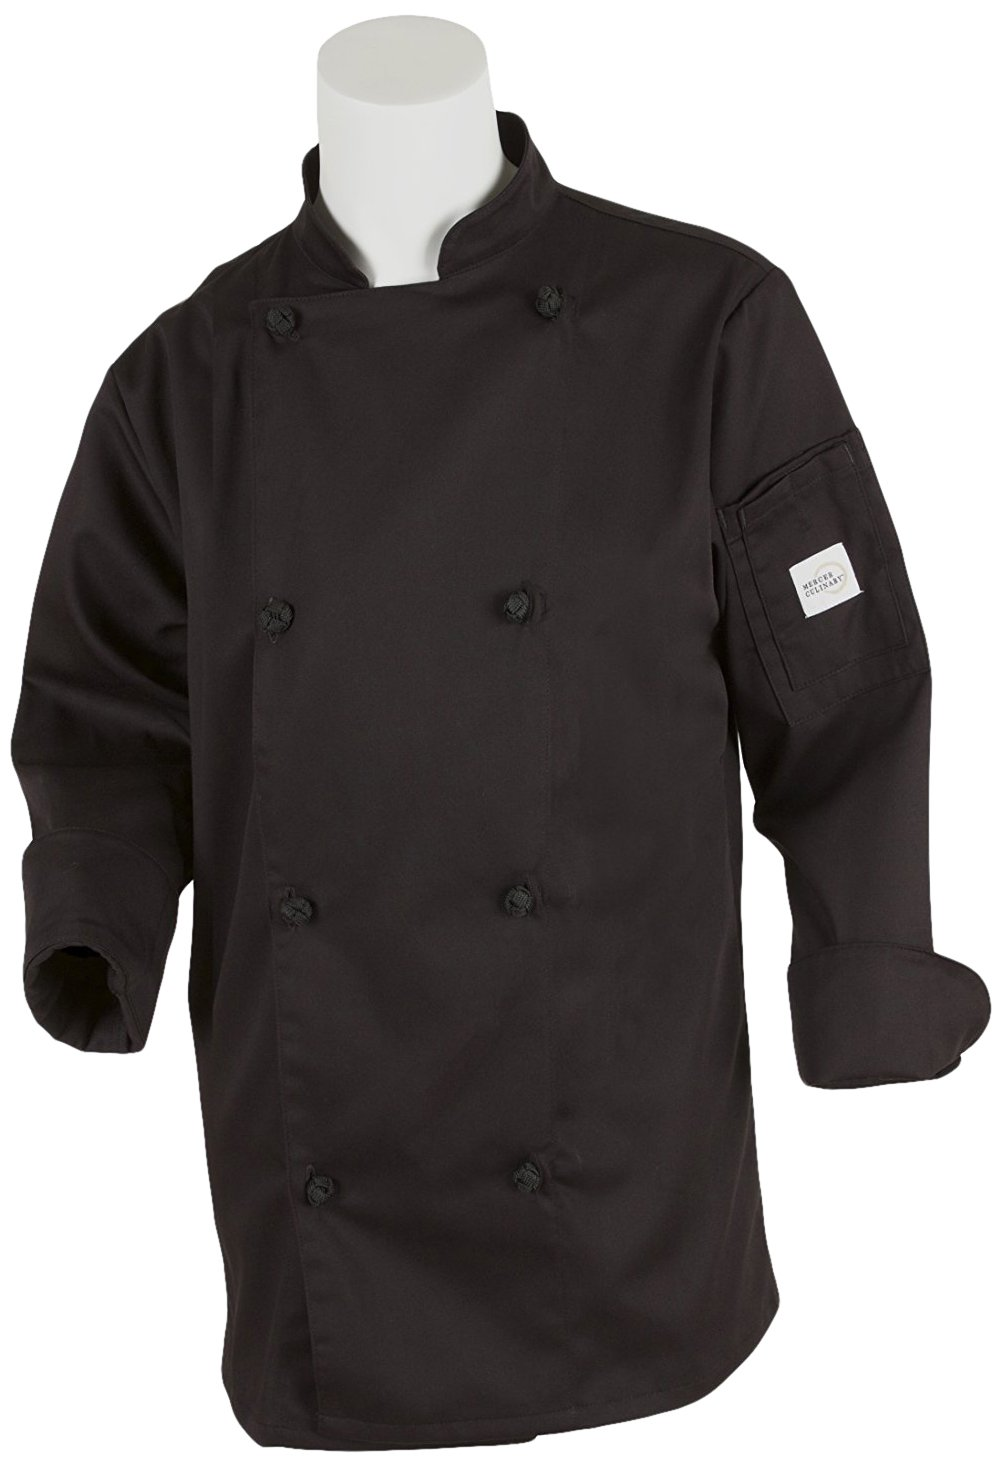 Mercer Culinary M61040BK1X Genesis Women's Chef Jacket with Cloth Knot Buttons, X-Large, Black by Mercer Culinary